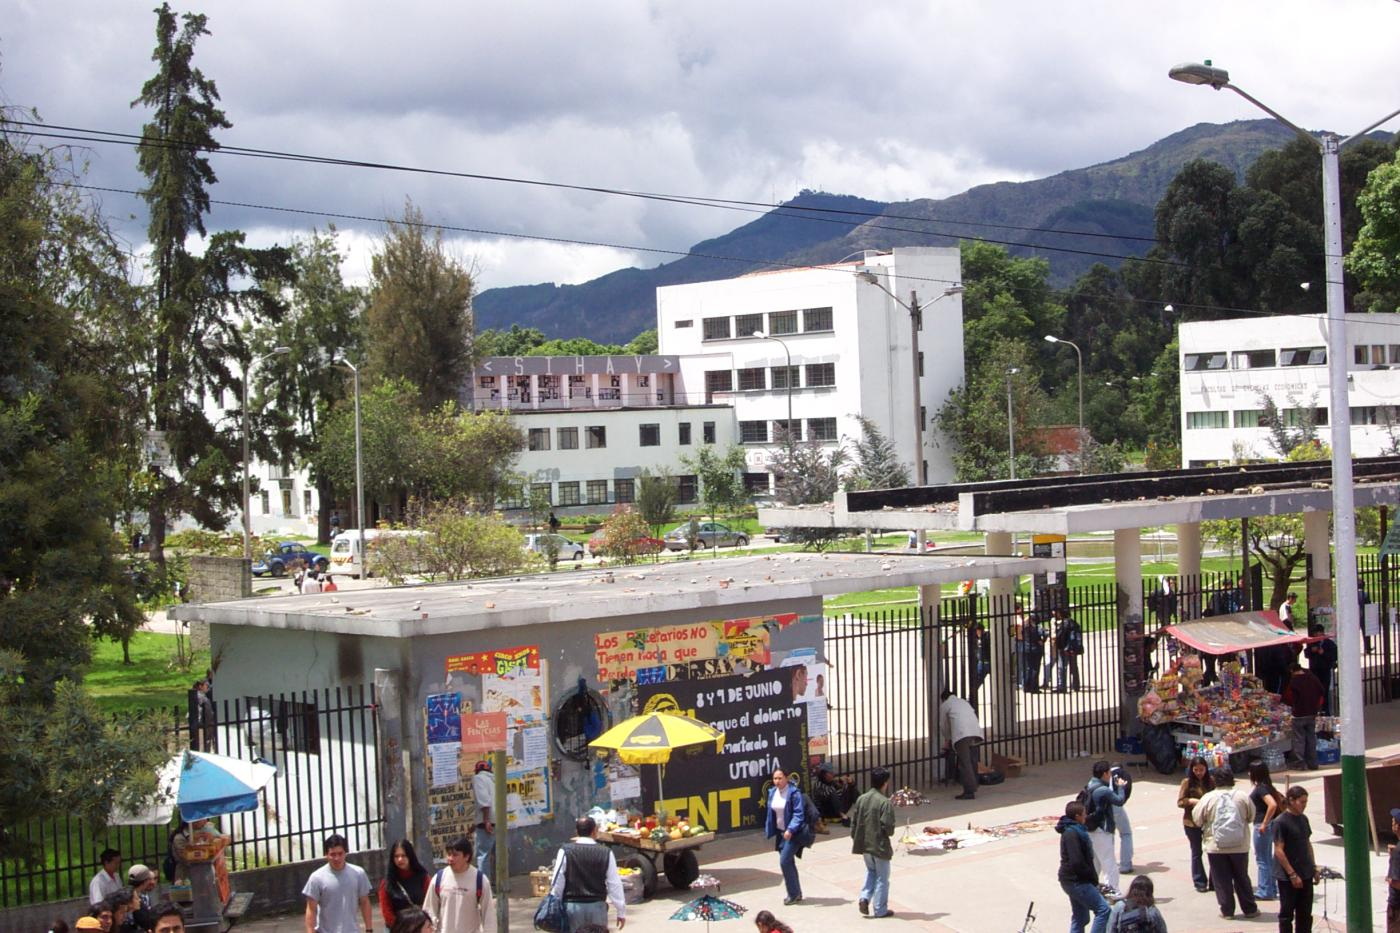 The National University of Colombia